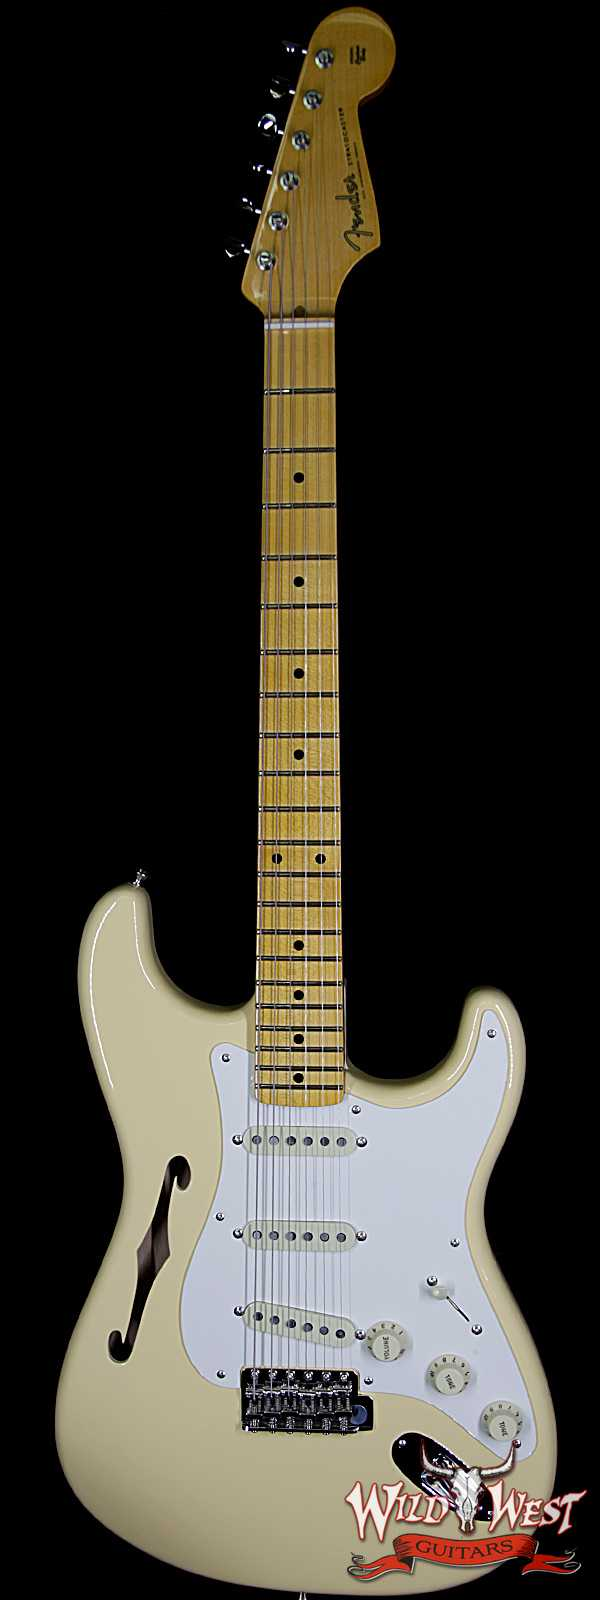 Fender USA Eric Johnson Signature Stratocaster Thinline Semi-Hollow Body Maple Neck Vintage White